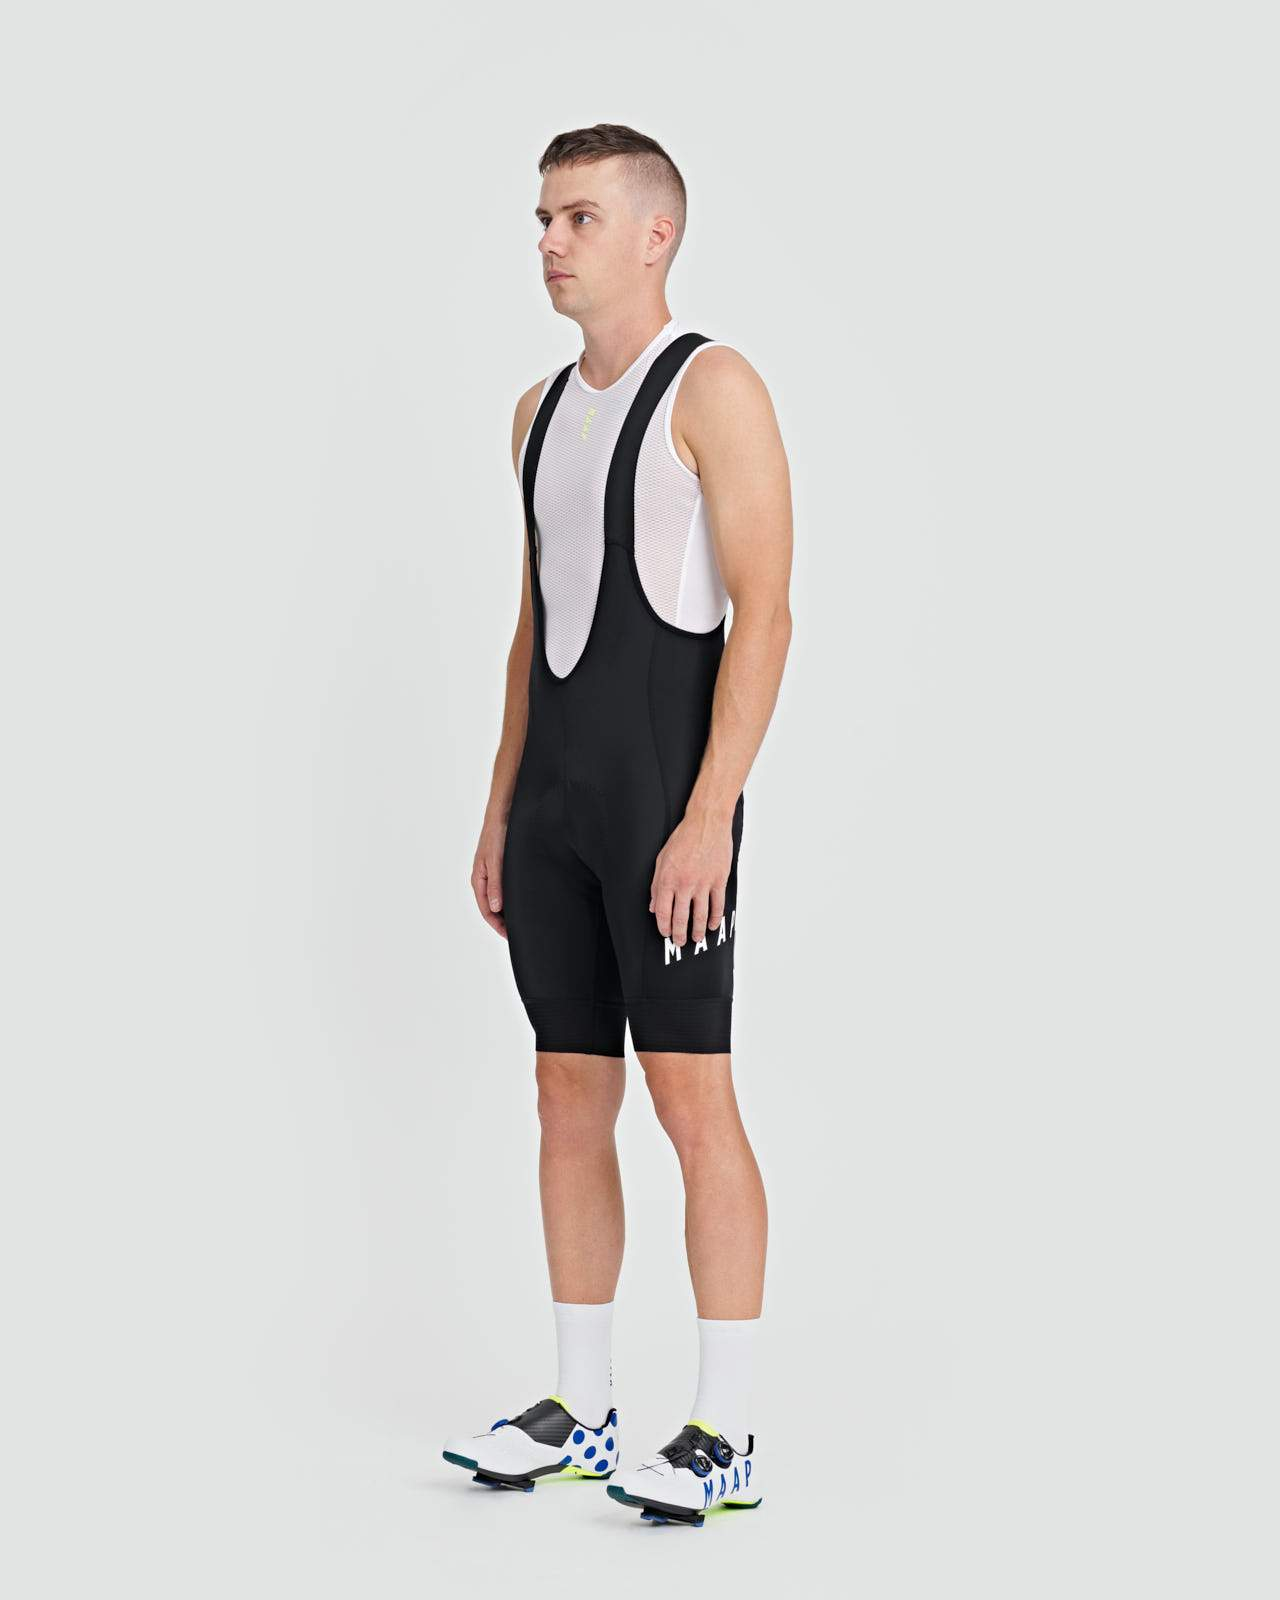 MAAP Team Bib Short 3.0 Black